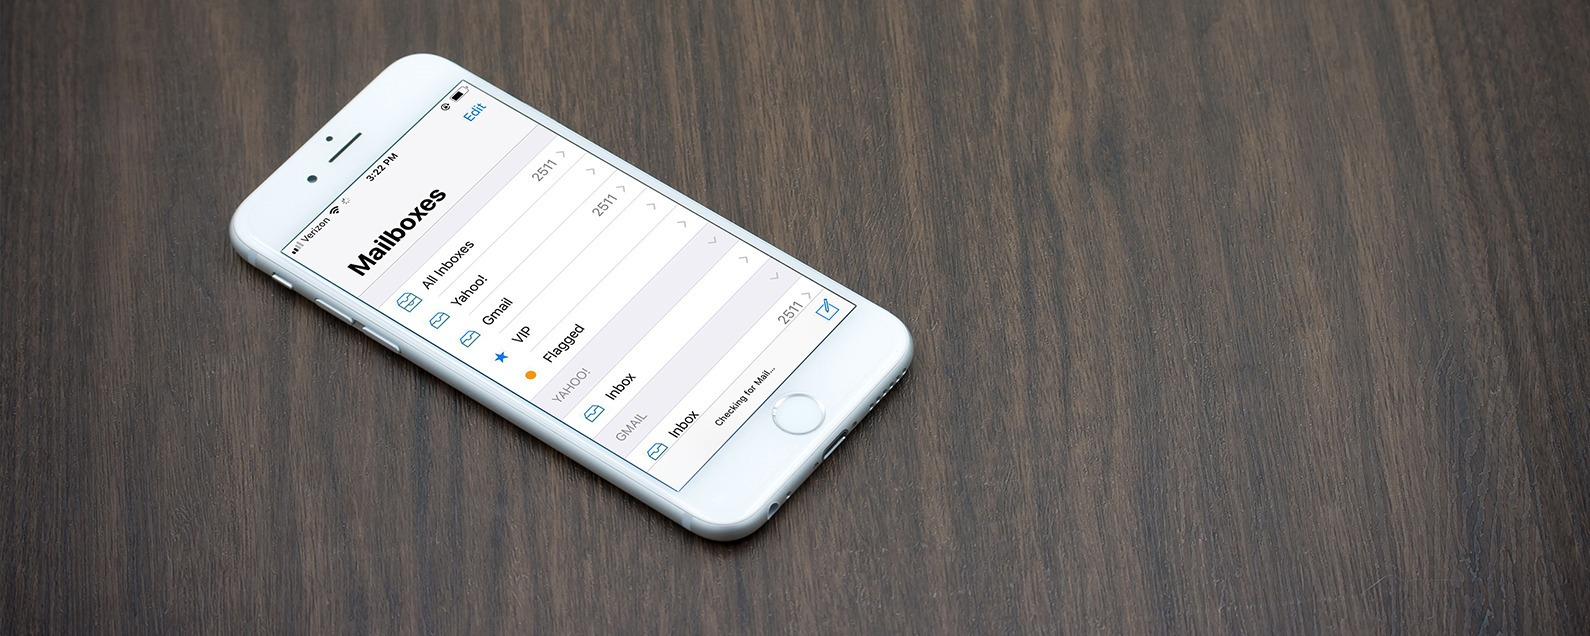 How to empty mailbox on iphone 6s